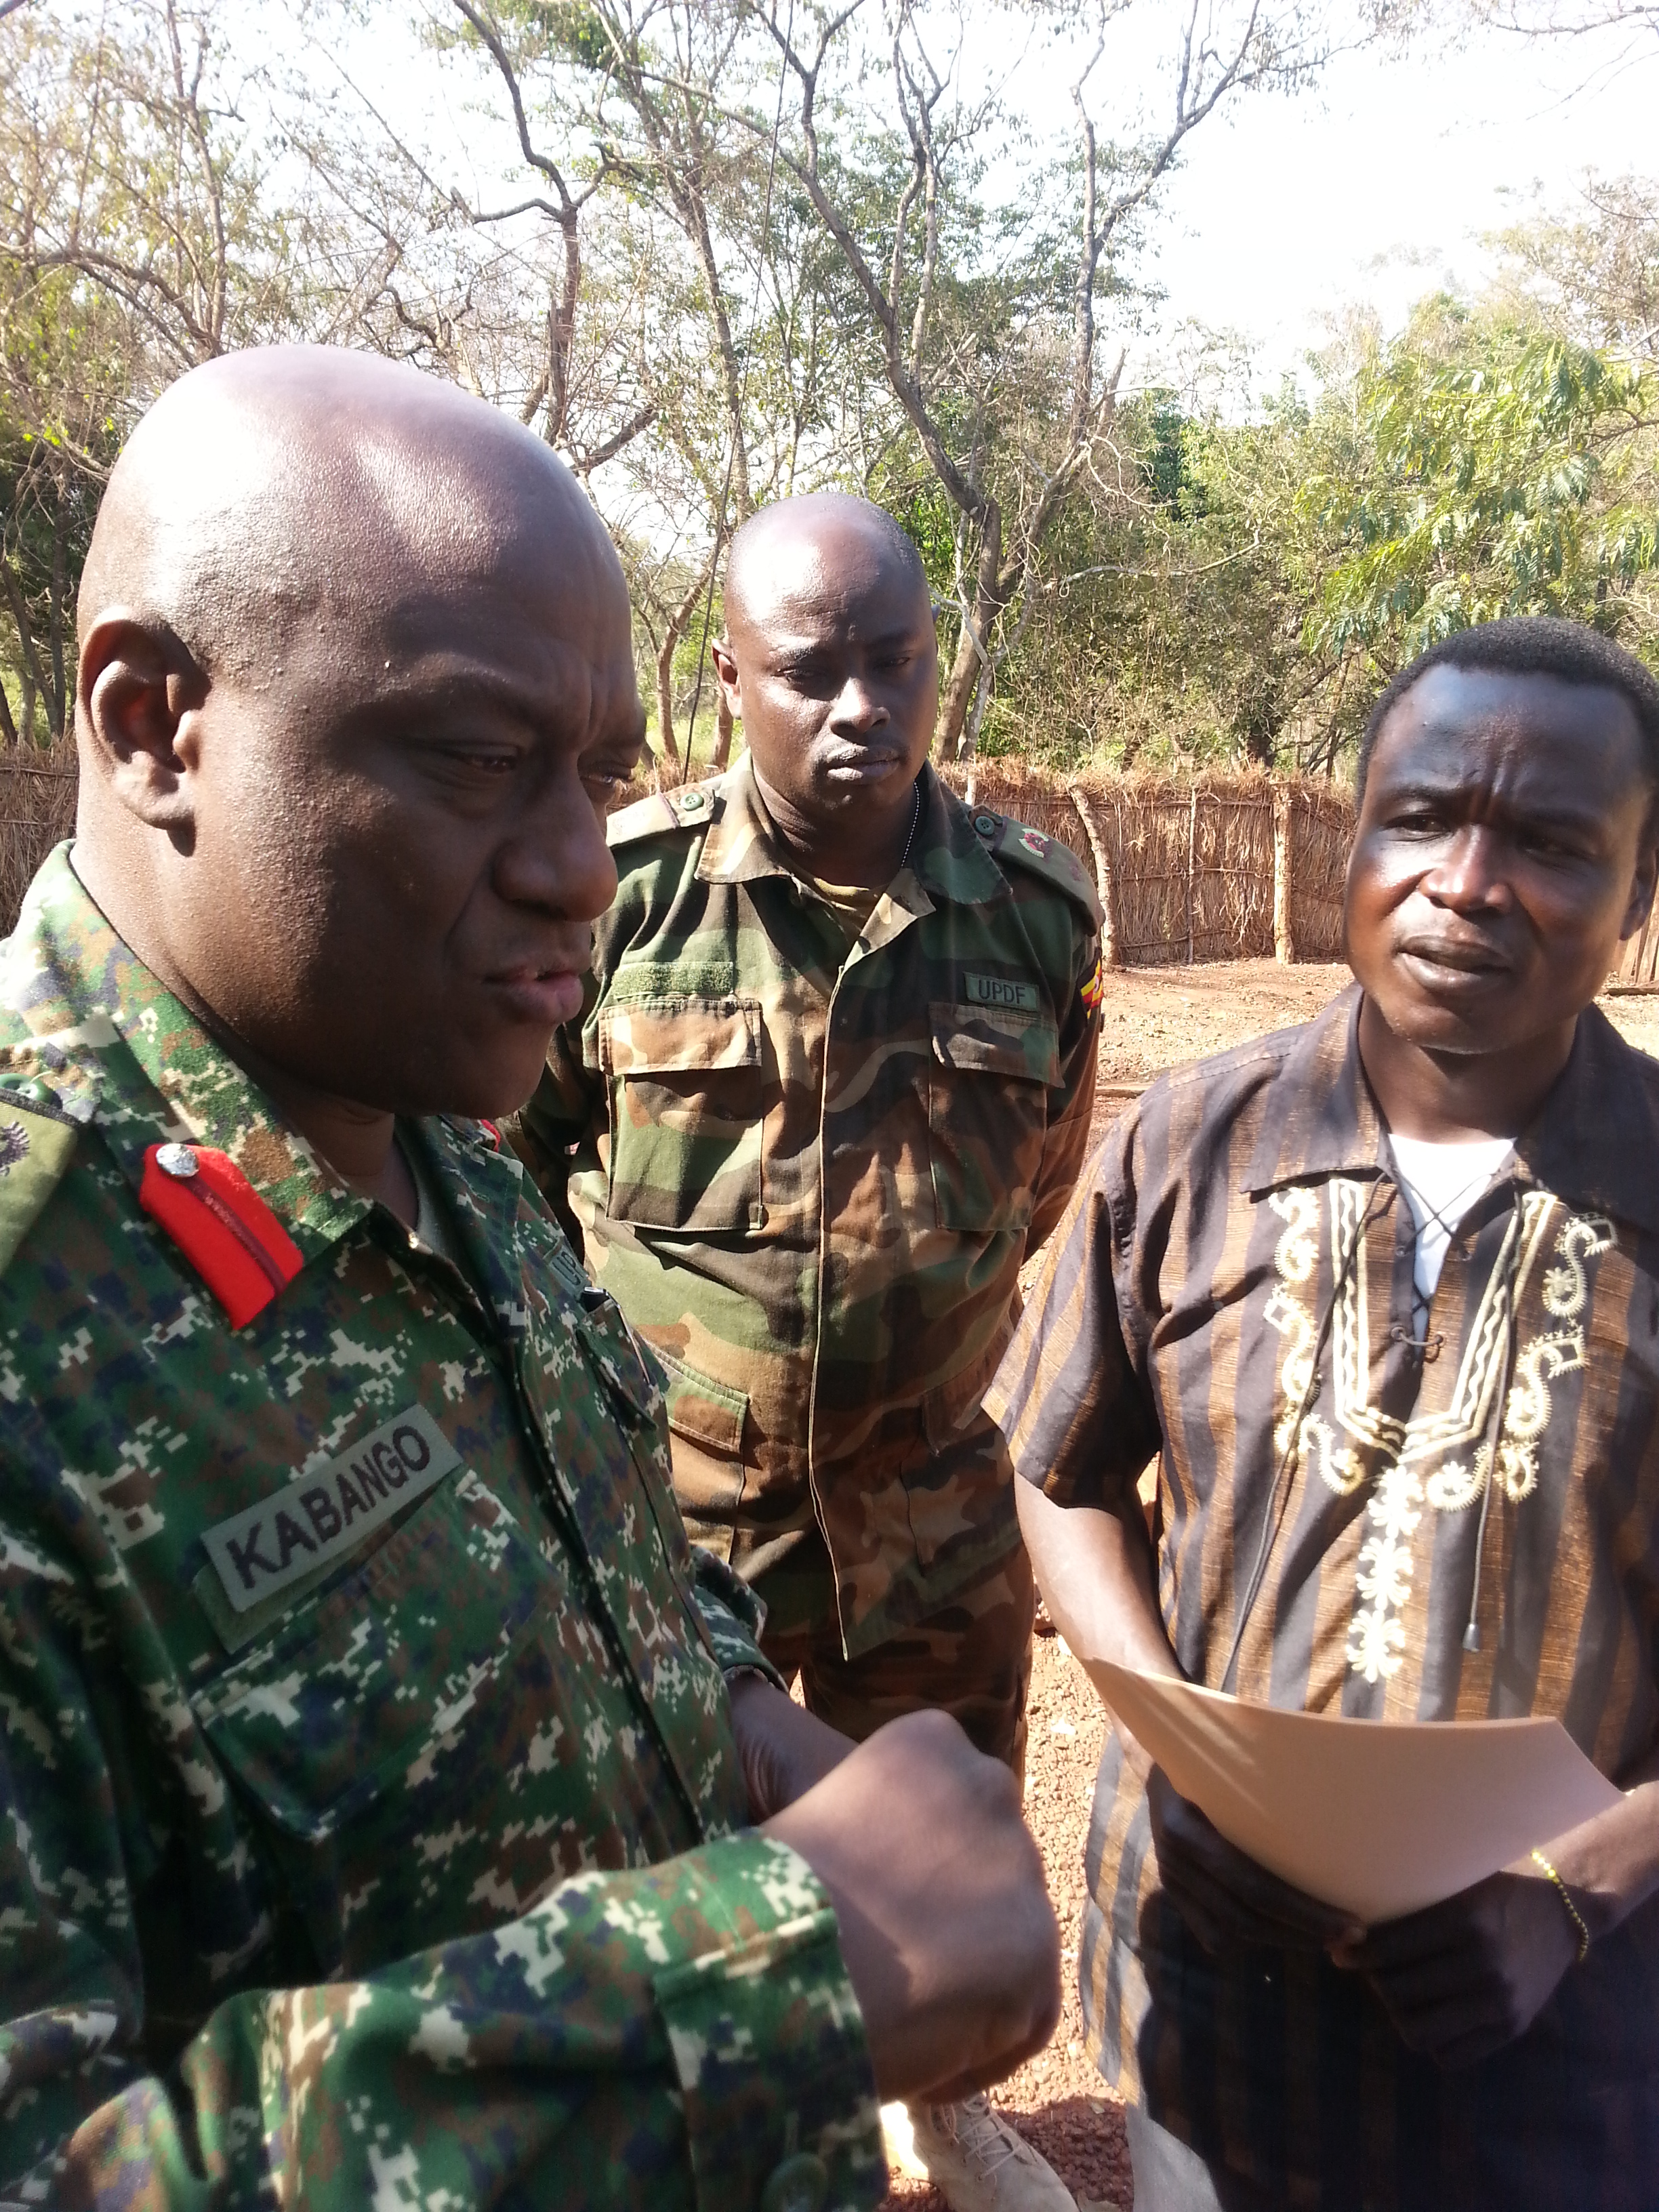 Dominic Ongwen handed over to UPDF in CAR